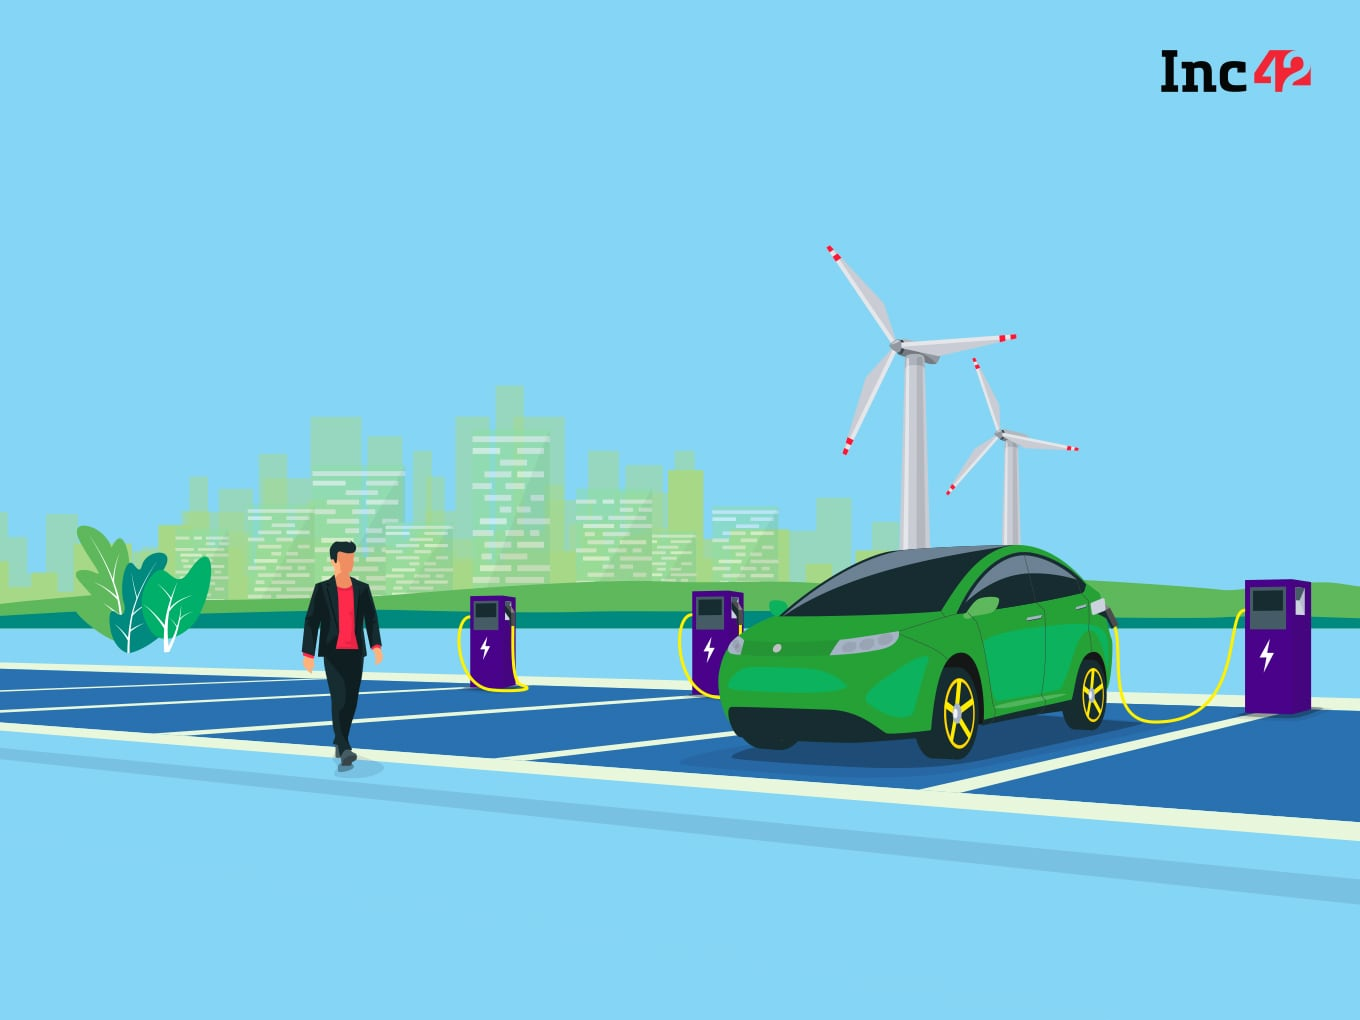 From Electric Past To Electric Future: Mobility Comes Full Circle